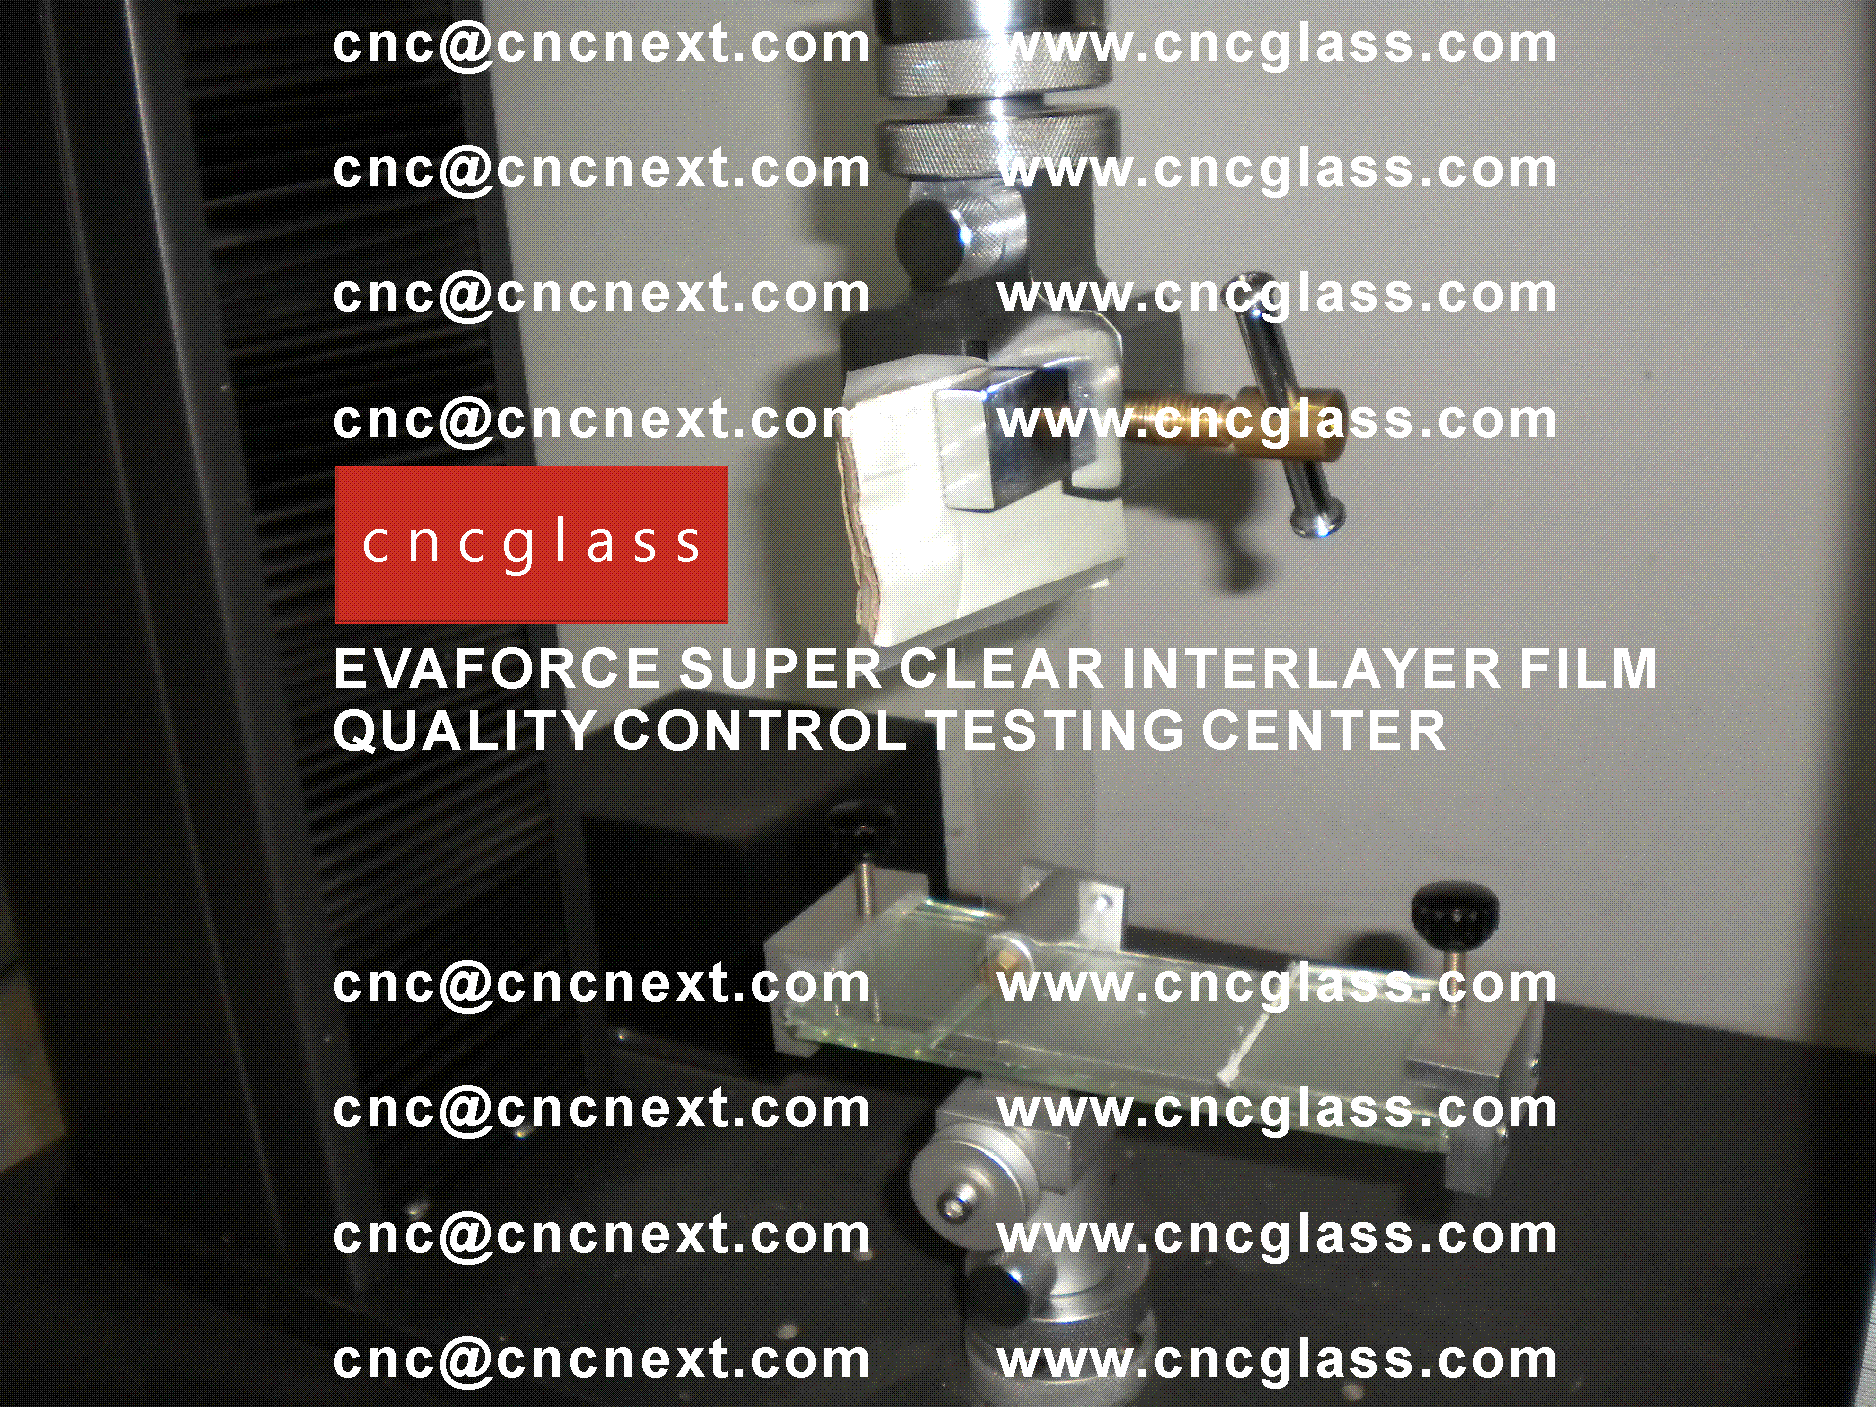 001 Quality Control of EVAFORCE SUPER CLEAR INTERLAYER FILM